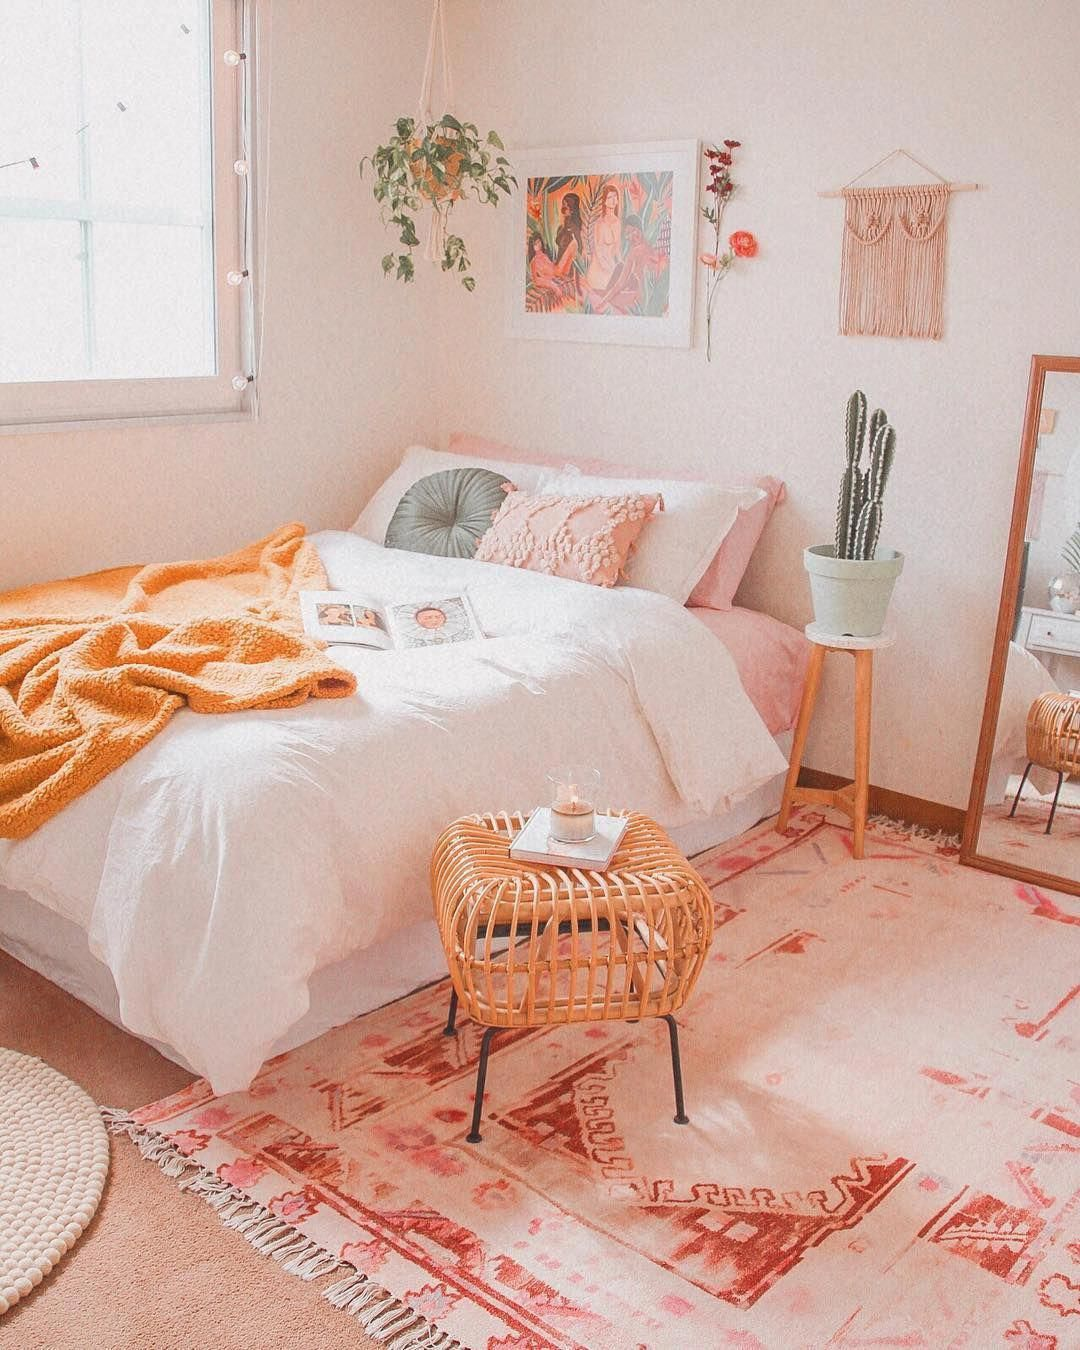 12 Beautiful Boho Bedroom Decorating On A Budget For ... on Bohemian Bedroom Ideas On A Budget  id=70898